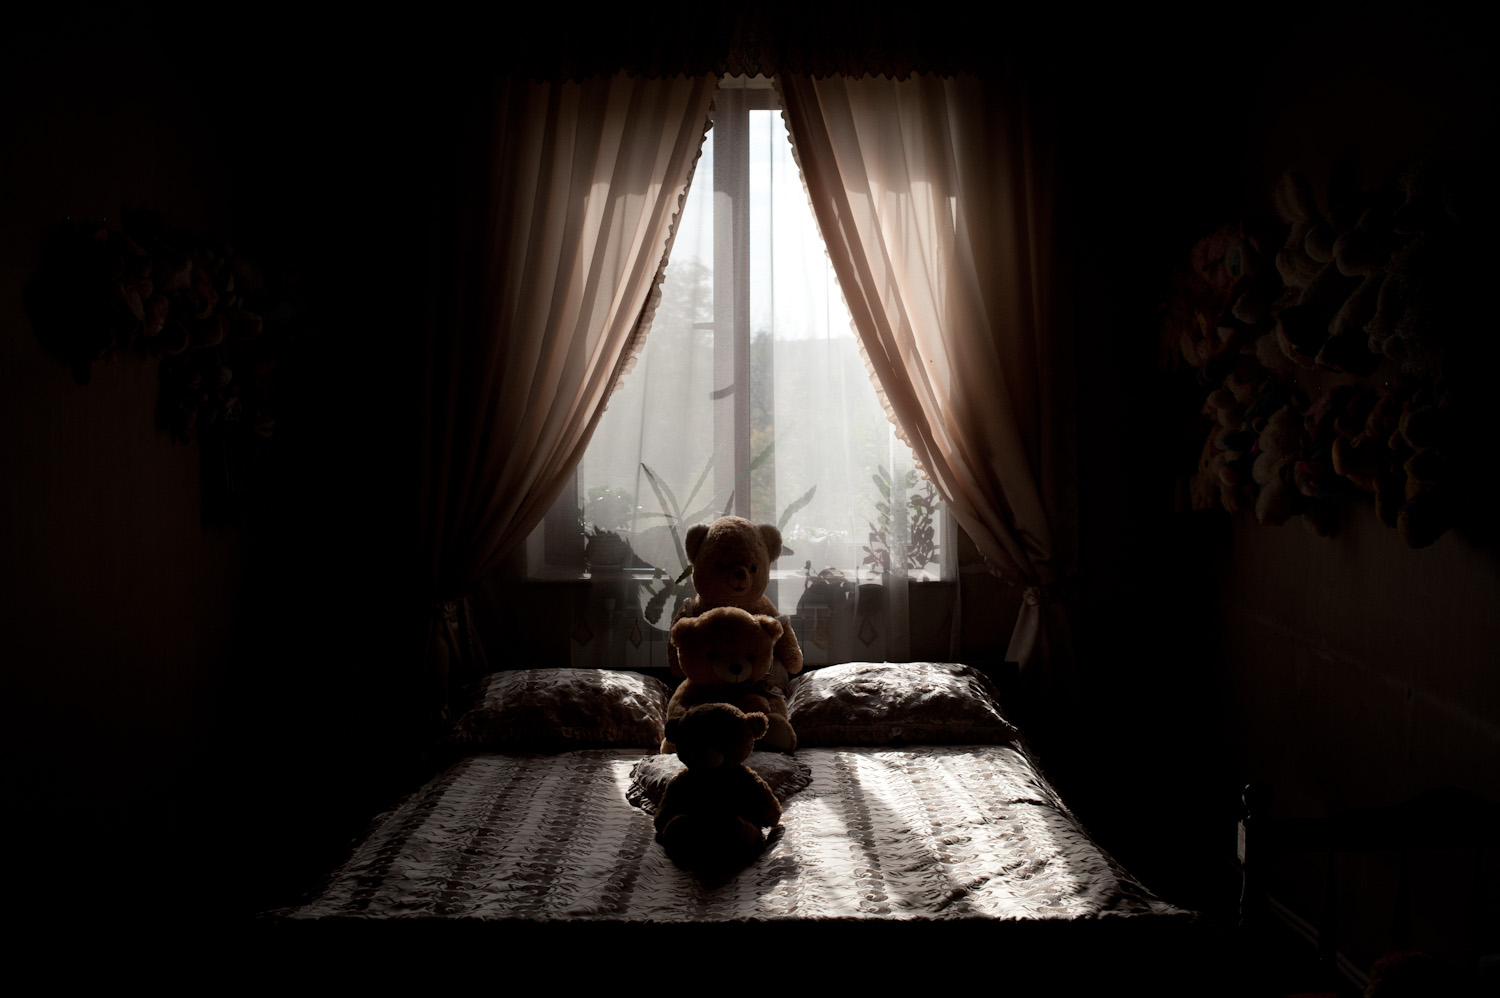 """Araik Avedisyan's bedroom. """"I overheard a conversation my grandchildren were having the other day,"""" Anahit recalled, """"my granddaughter Ani asked my grandson Ara what he wants to be when he grows up. Ara said 'a soldier' and Ani responded 'Don't be a soldier, they leave and never come back.'"""""""